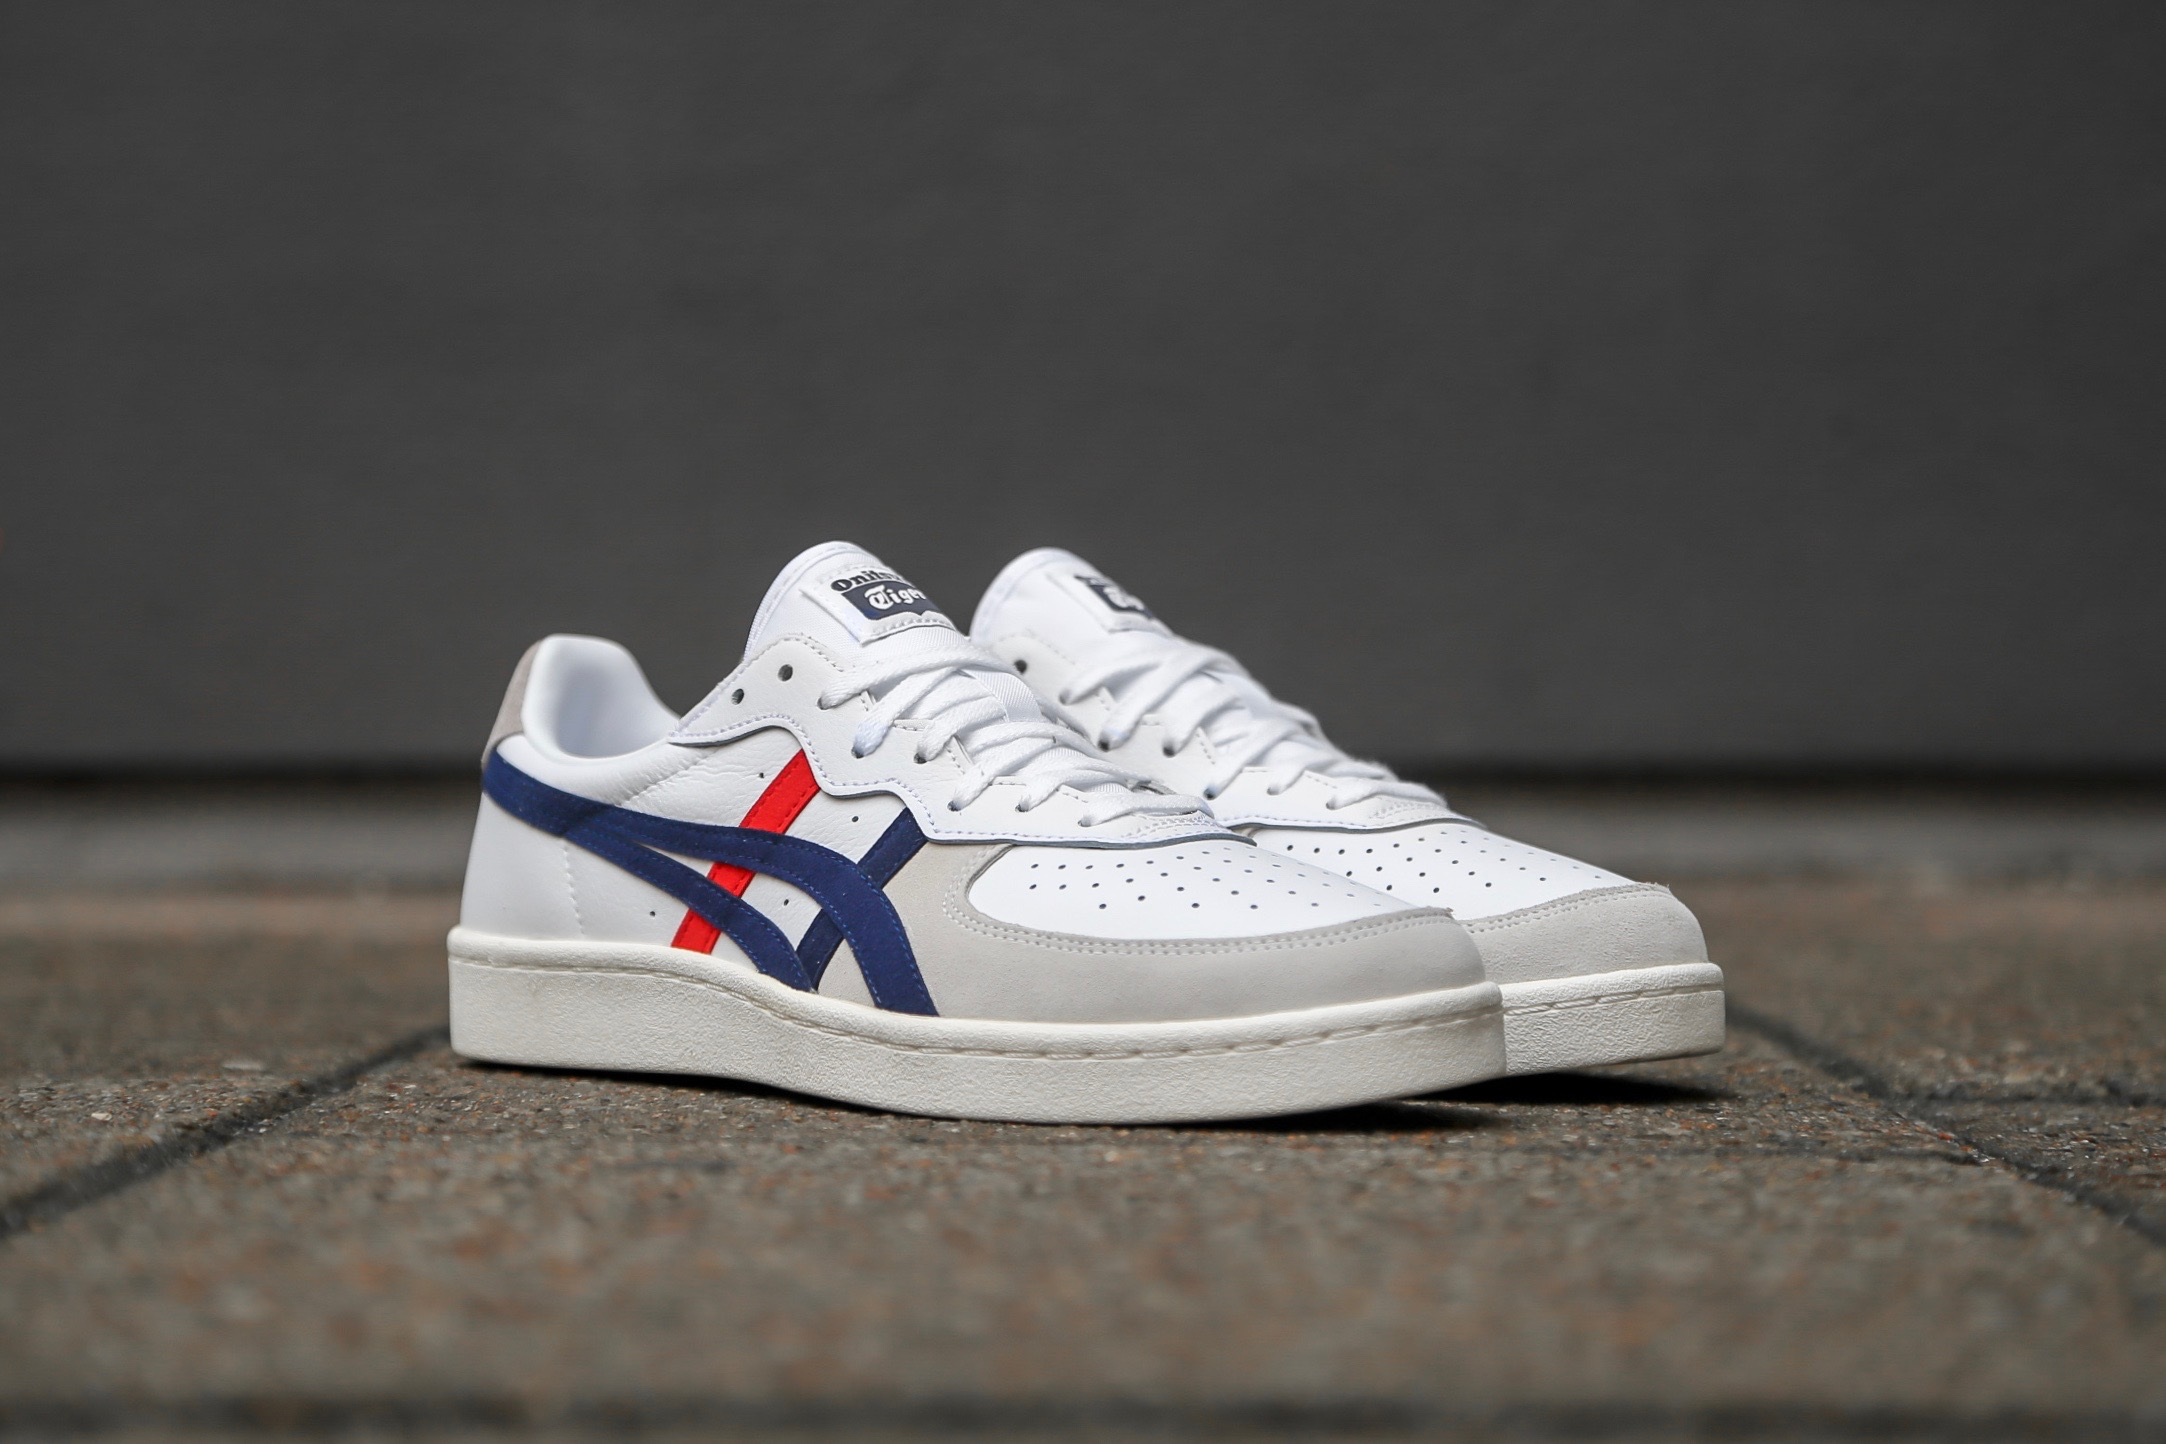 sports shoes 67f10 b04f8 Onitsuka Tiger GSM - White / Peacoat